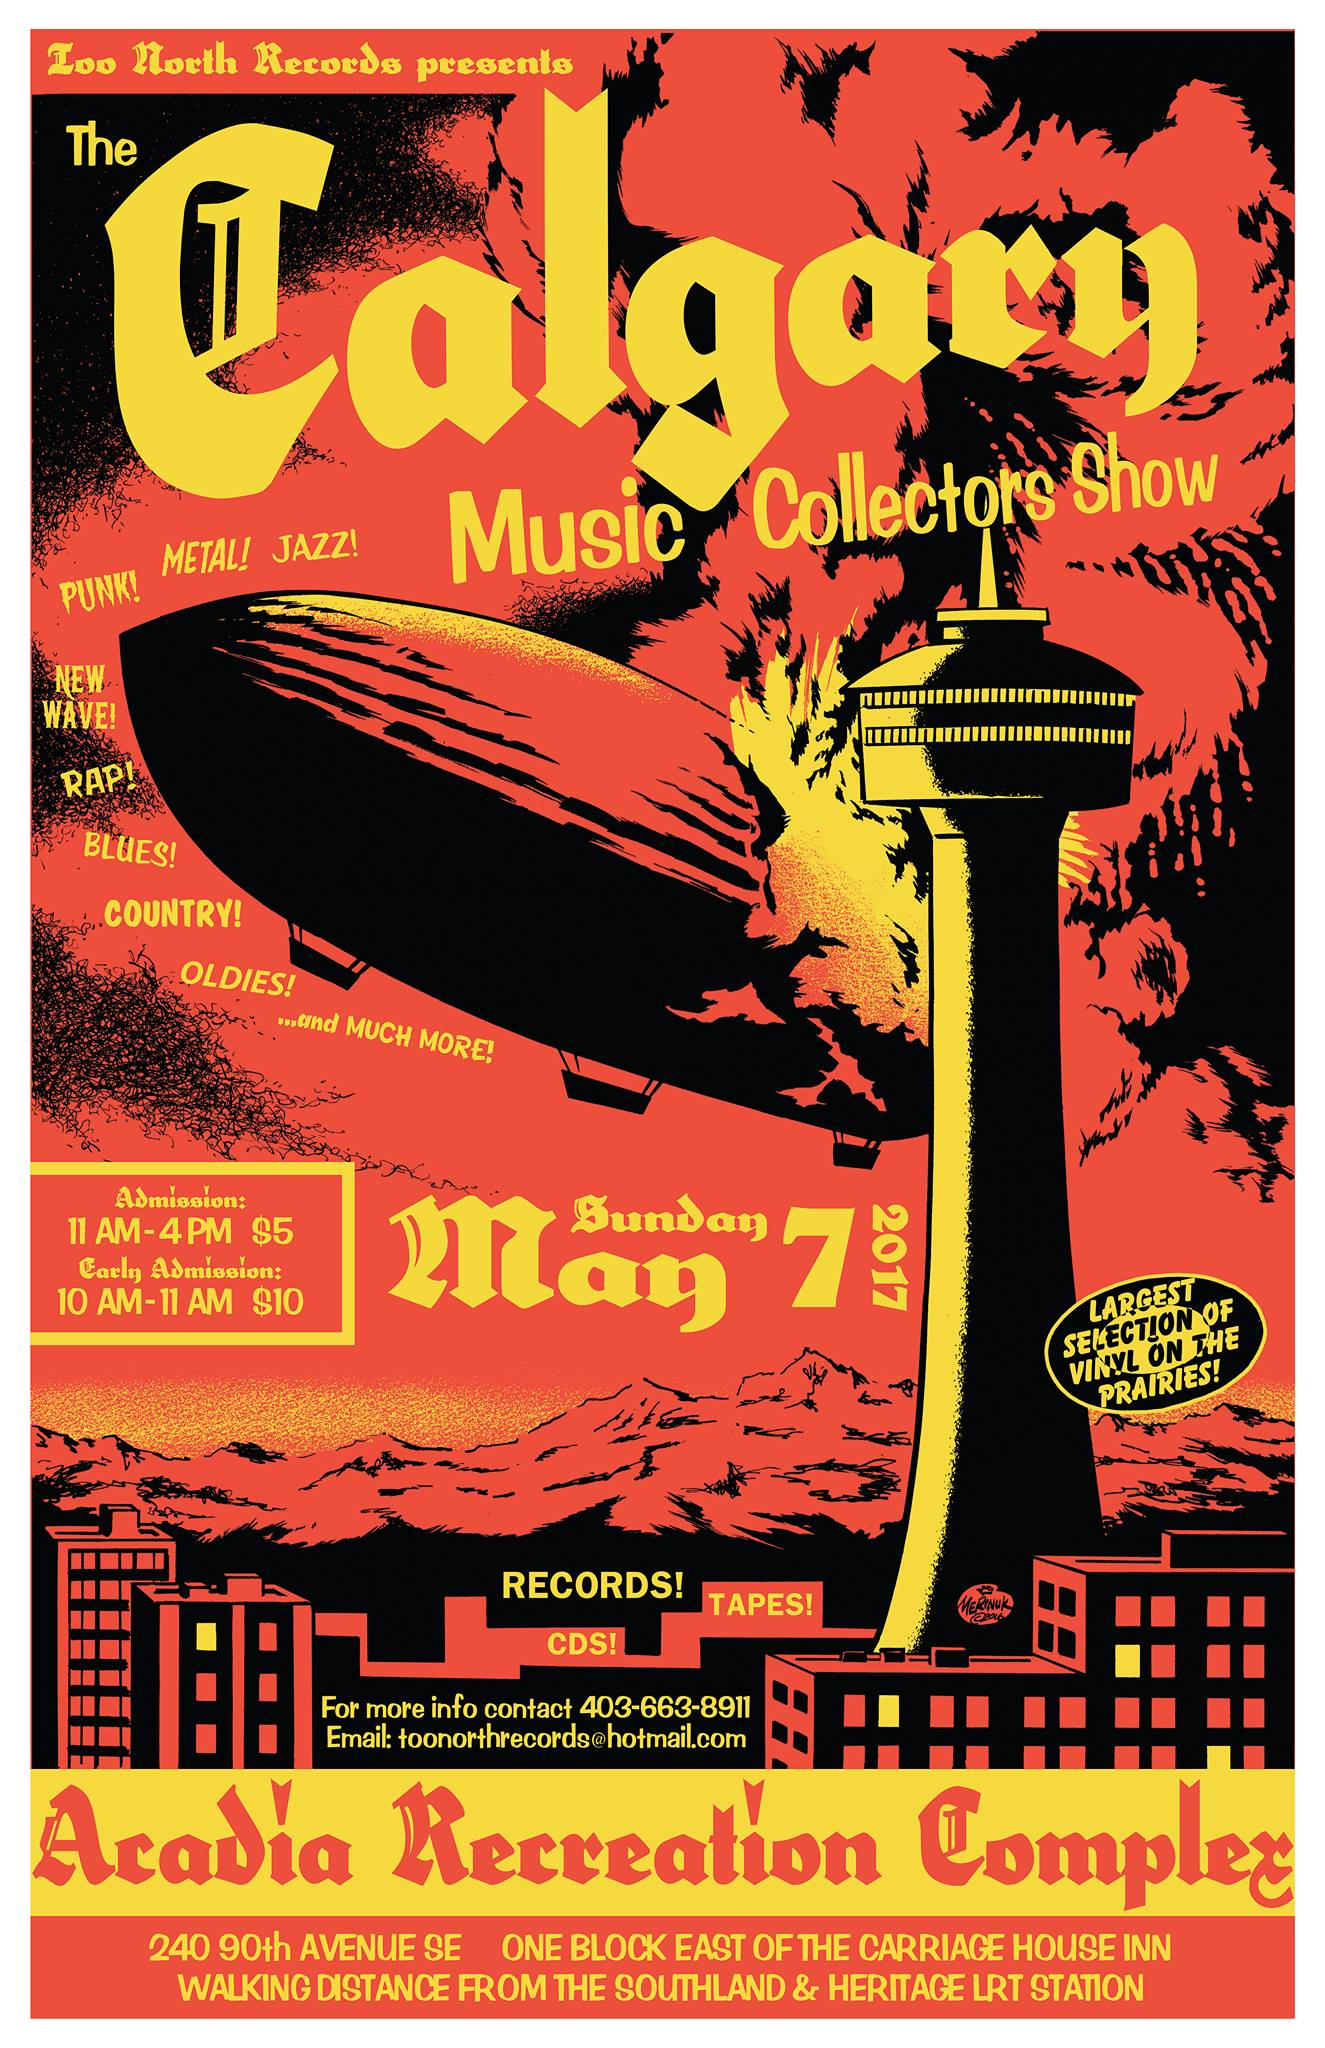 Calgary Music Collectors Show May 7 2017